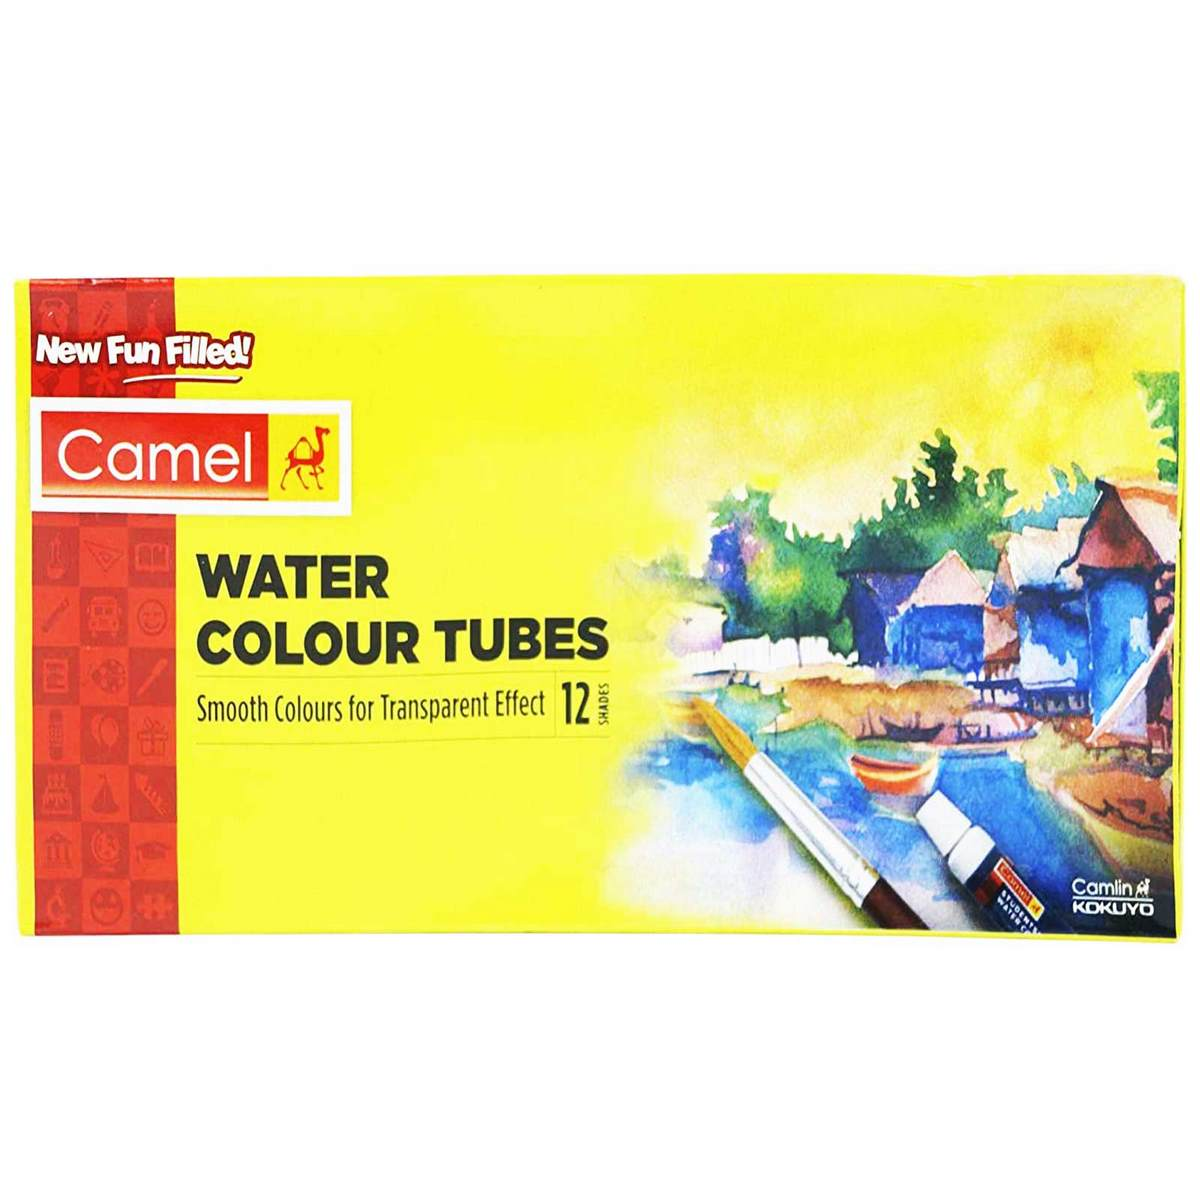 Camel Water Colour Tubes (Pack of 12 Tubes each 5ml)